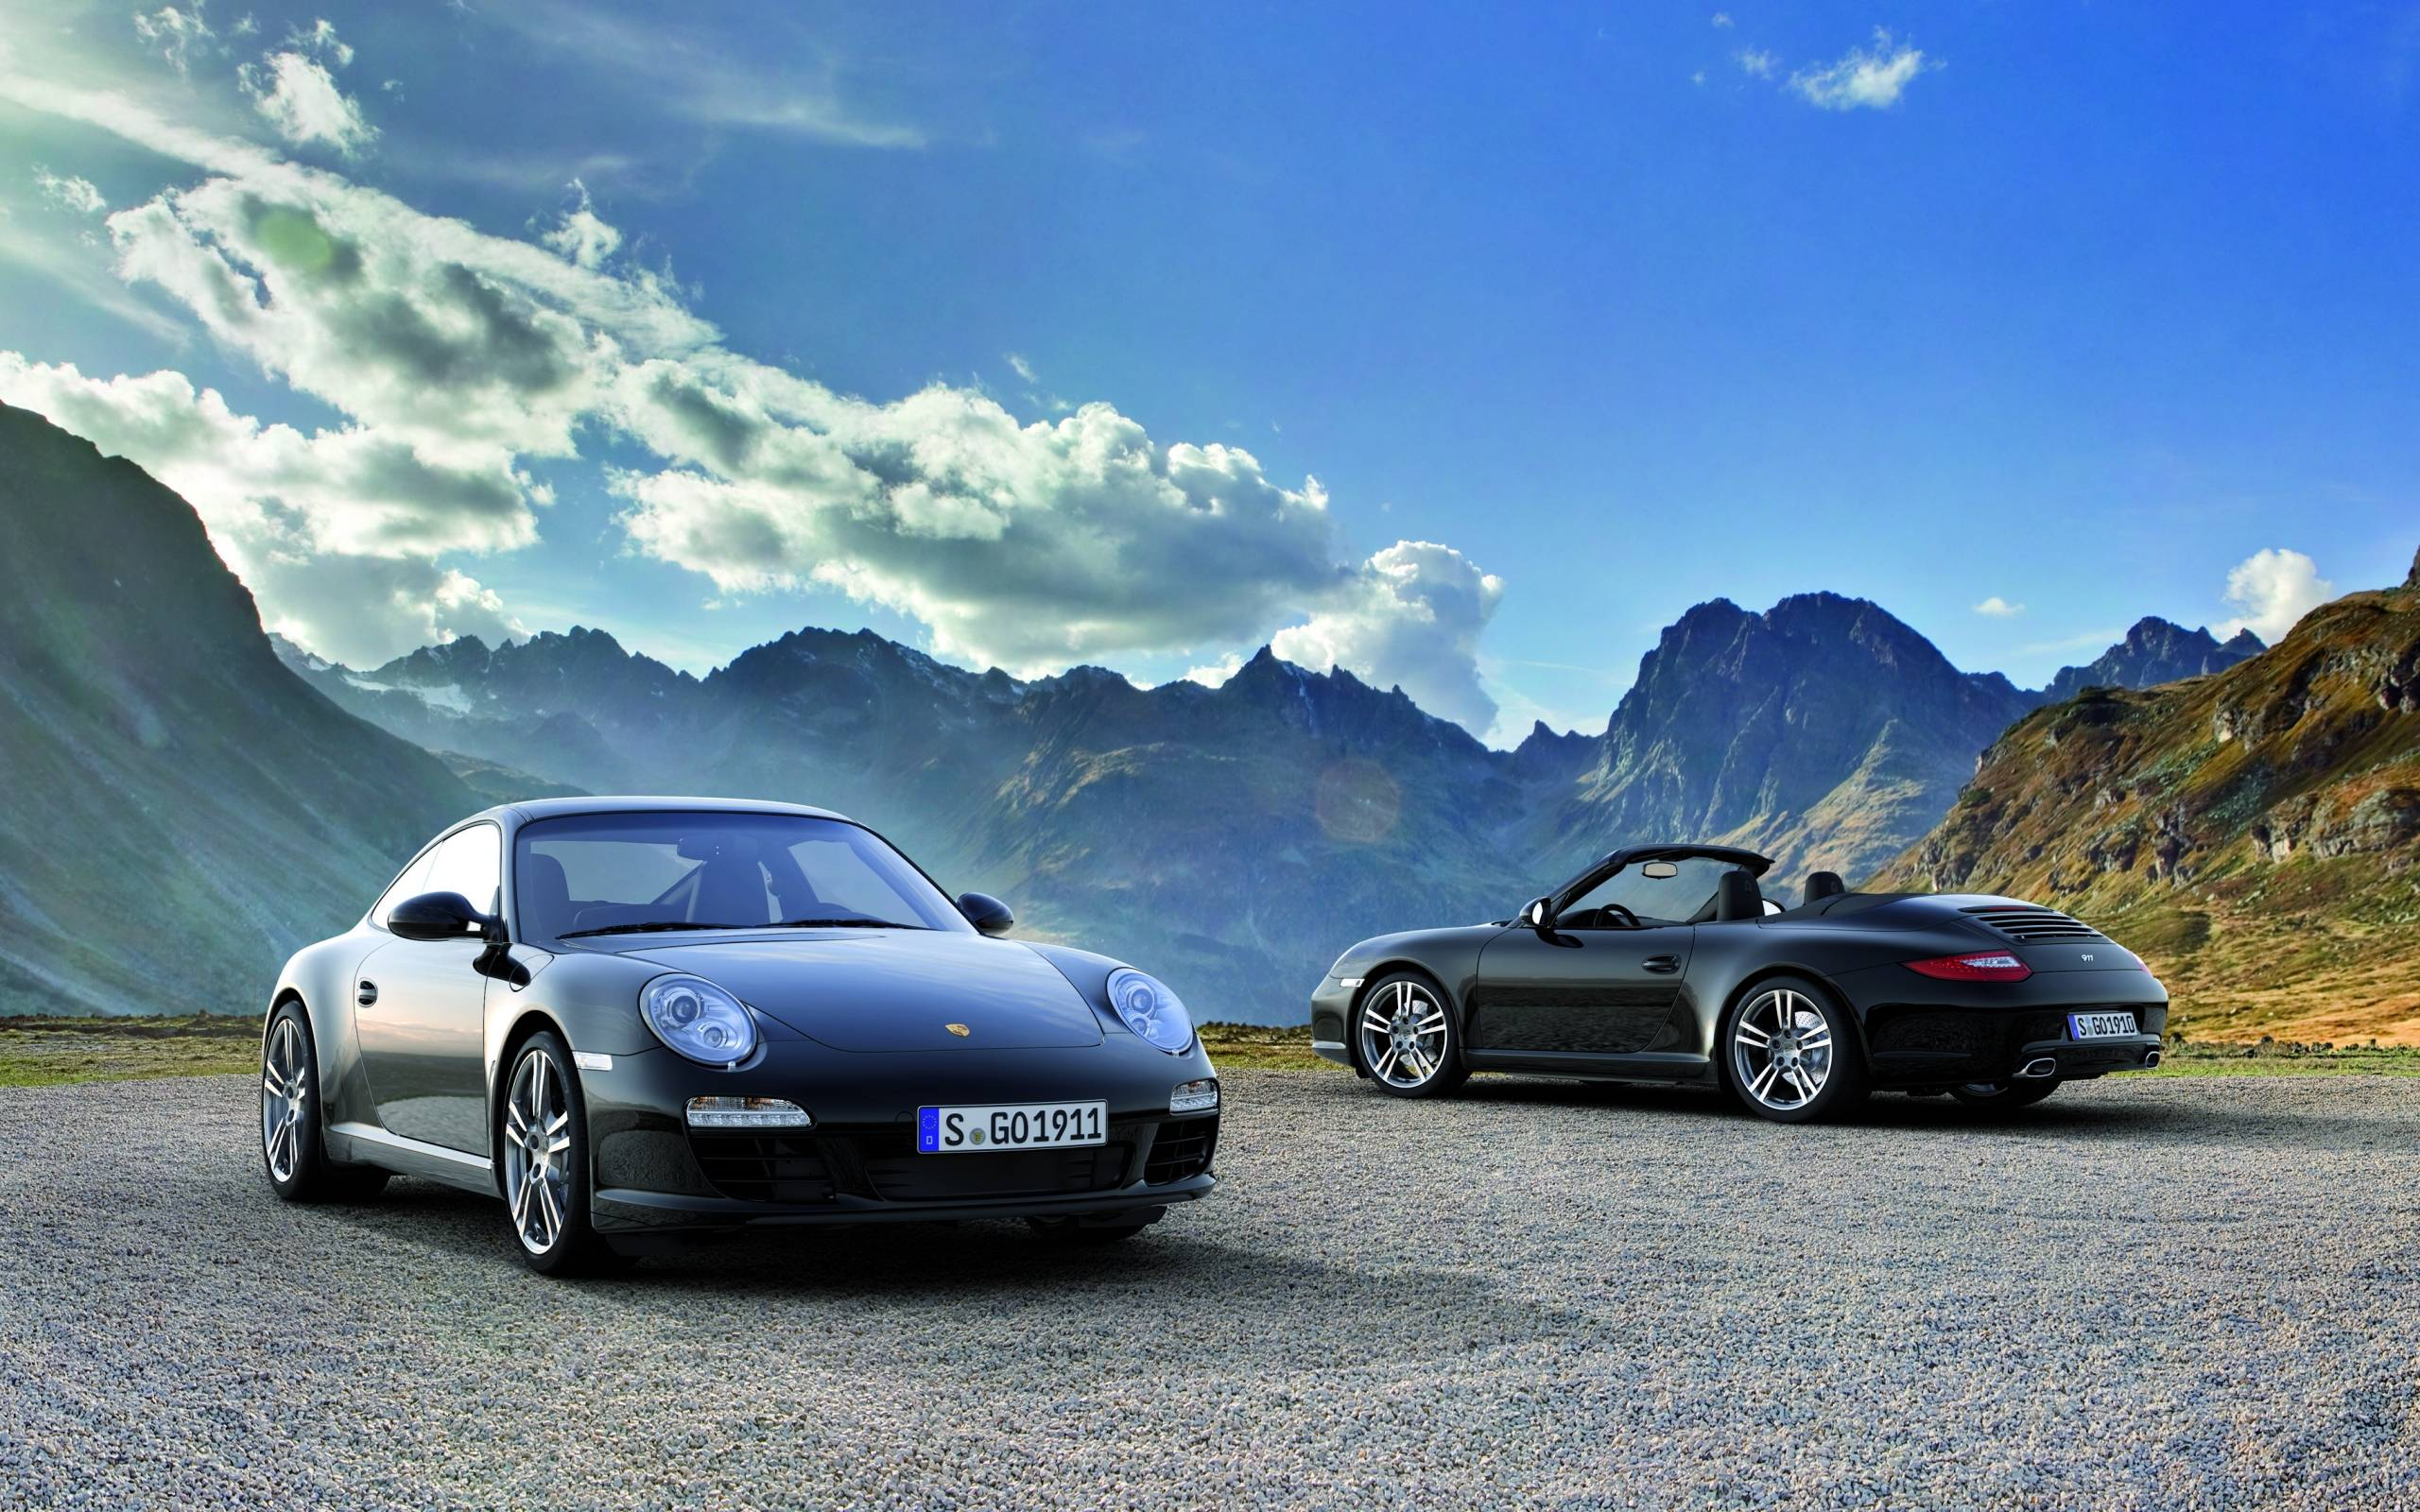 2011 Black Porsche 911 Black Edition wallpapers